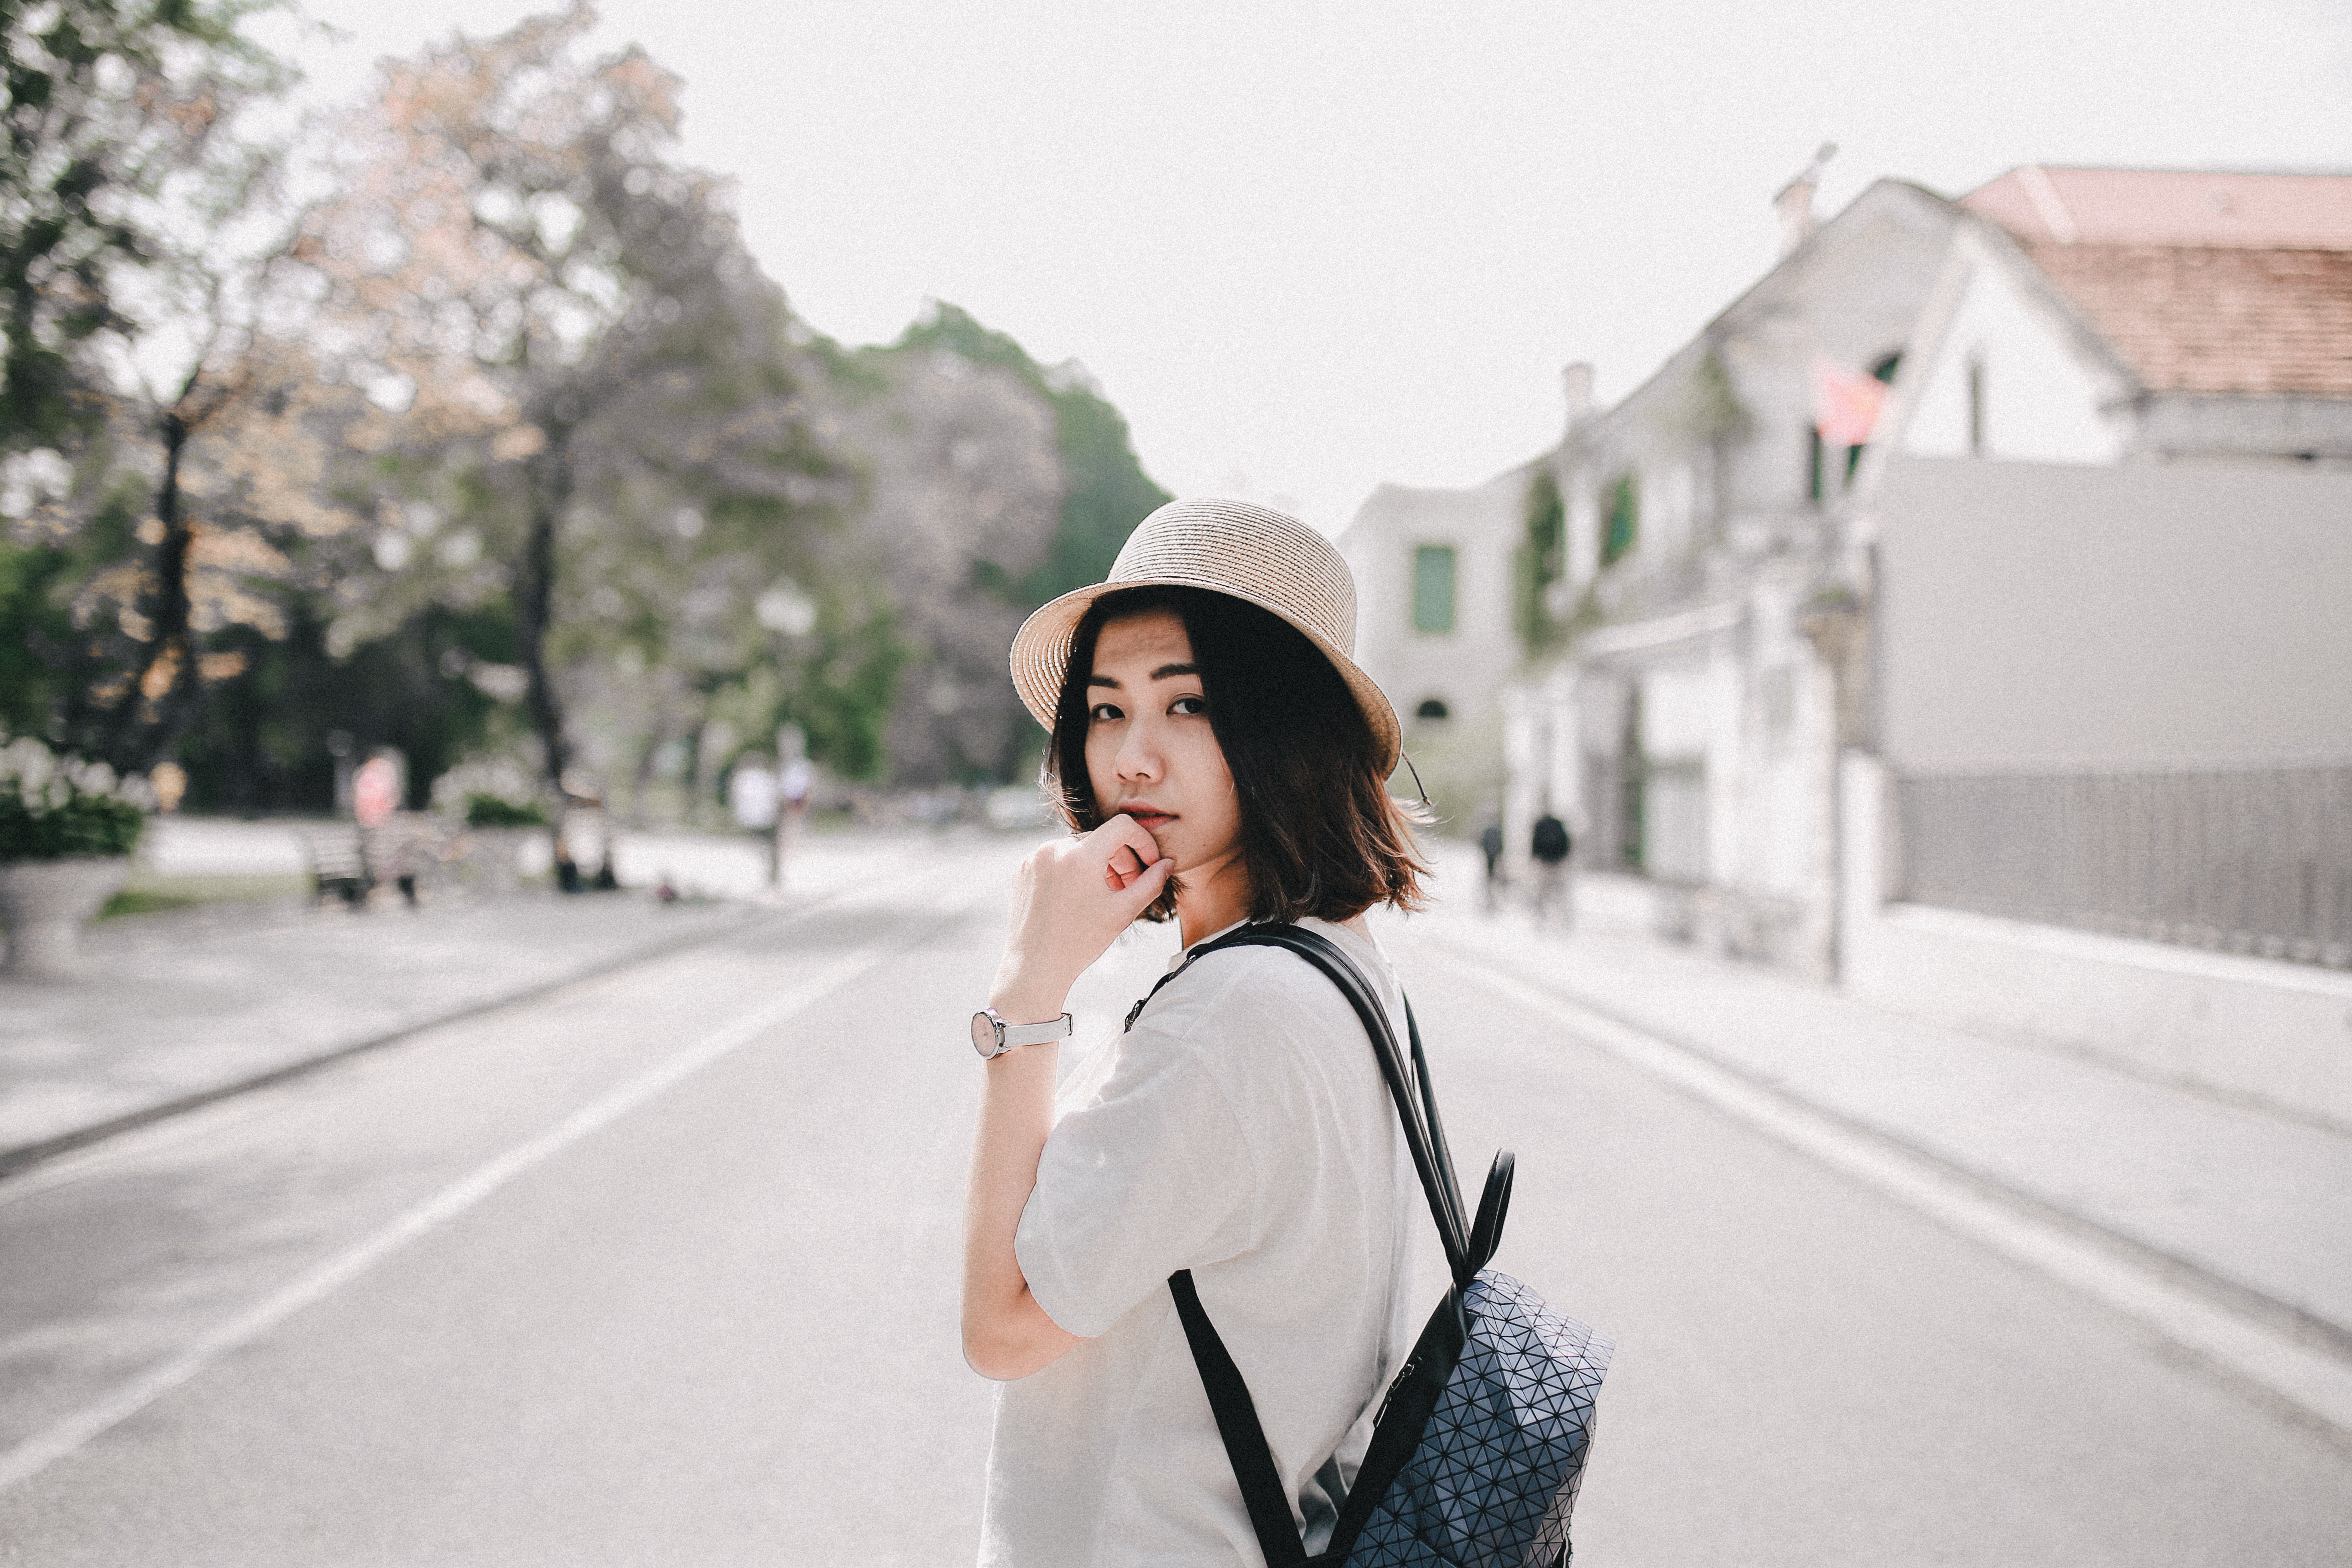 woman wearing white T-shirt and blue backpack standing on road